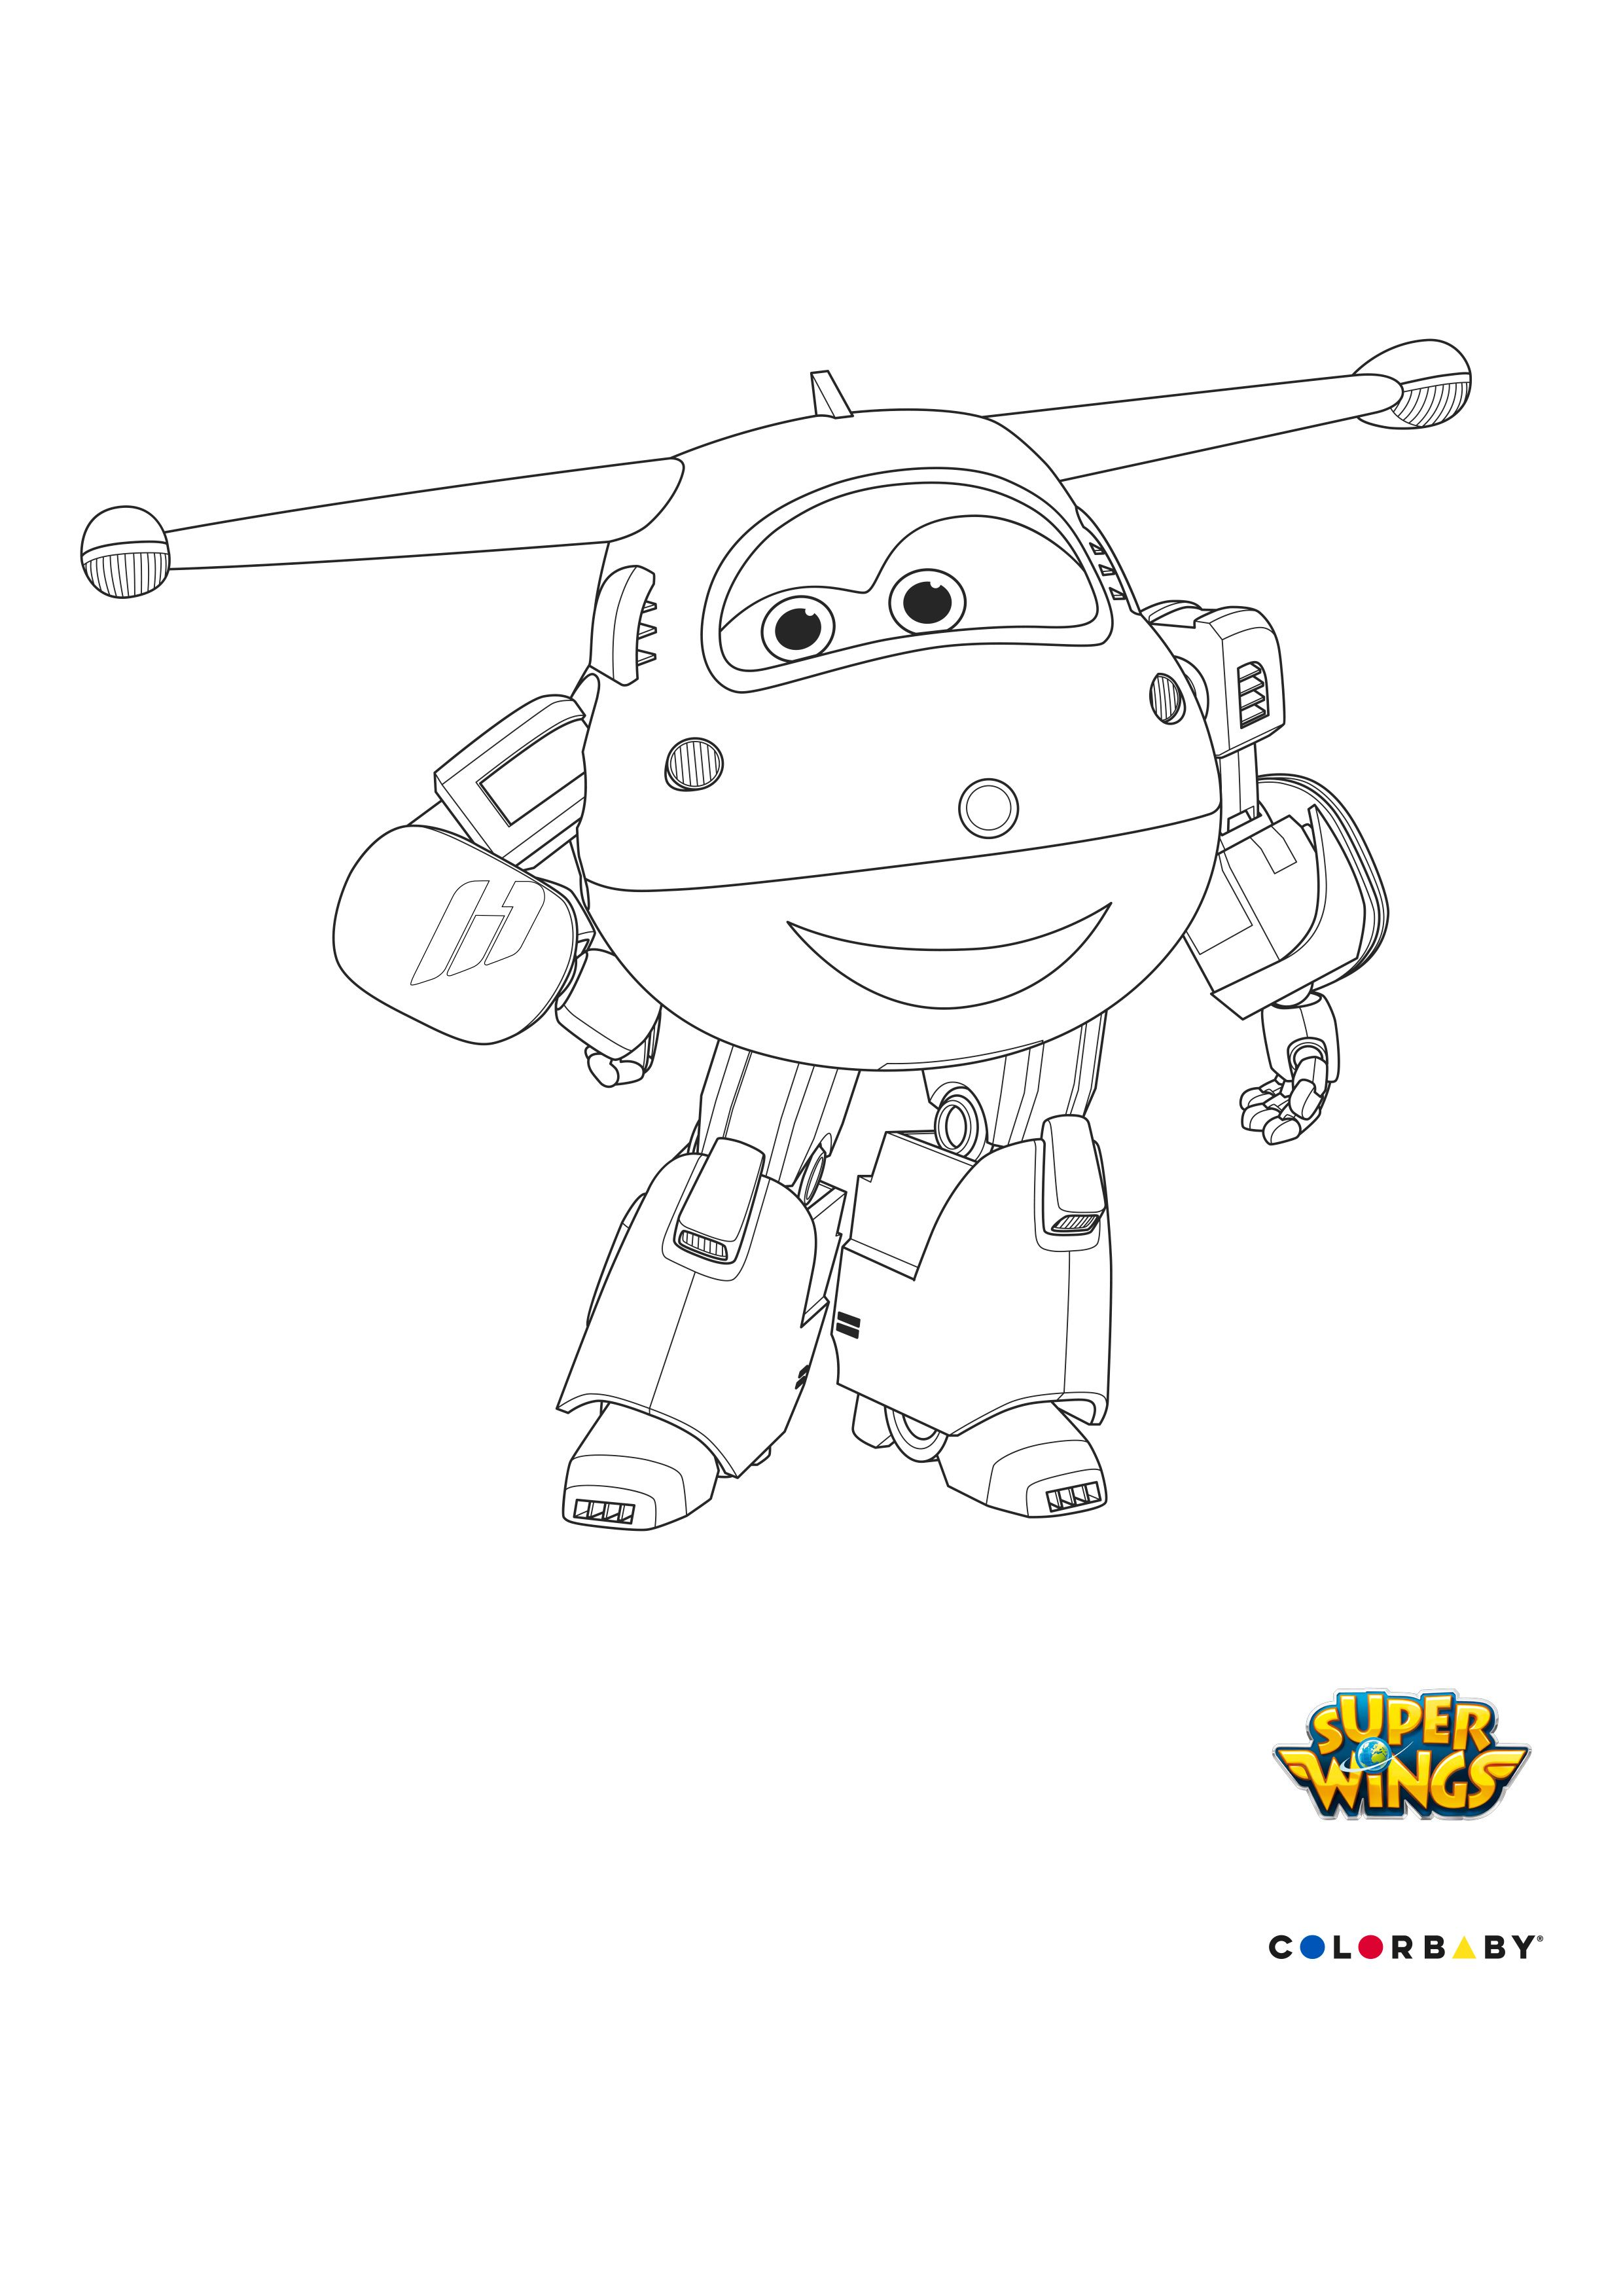 Luxe Dessin A Colorier Super Wings